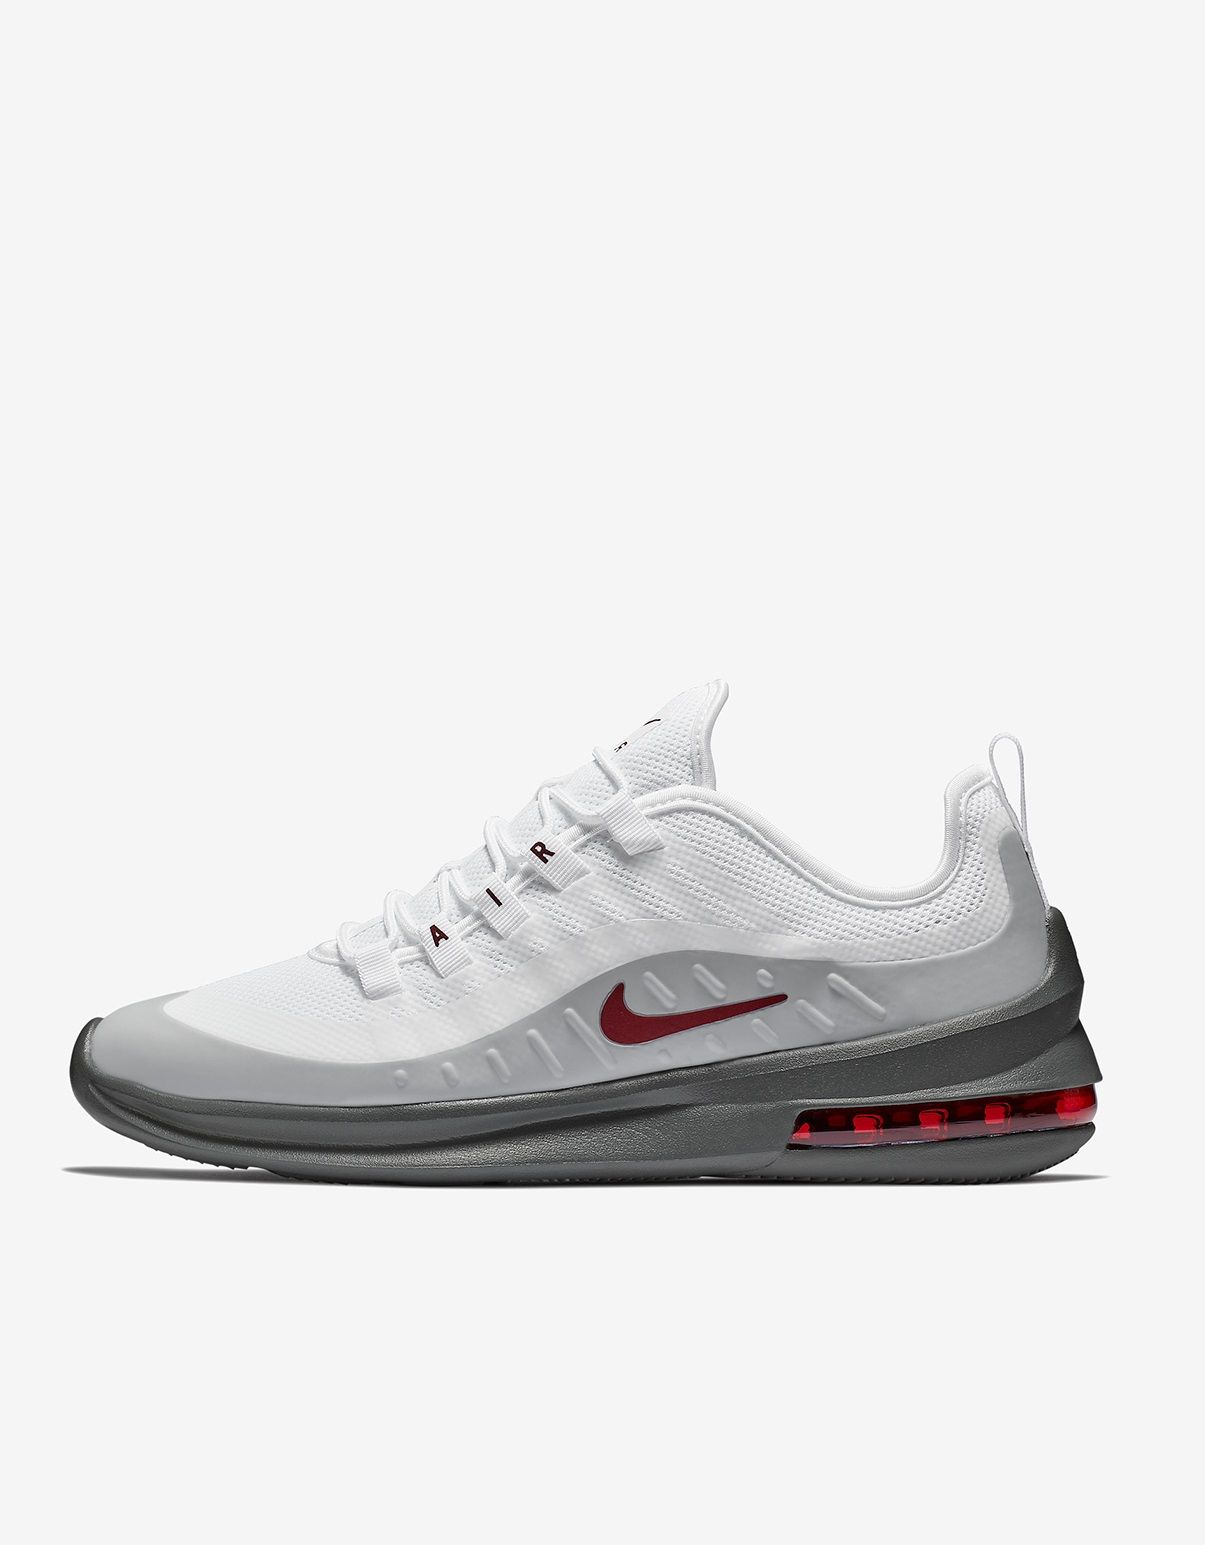 los recién llegados 9f673 55d0f Nike Air Max Axis | Sneakers: Nike Air Max in 2019 ...